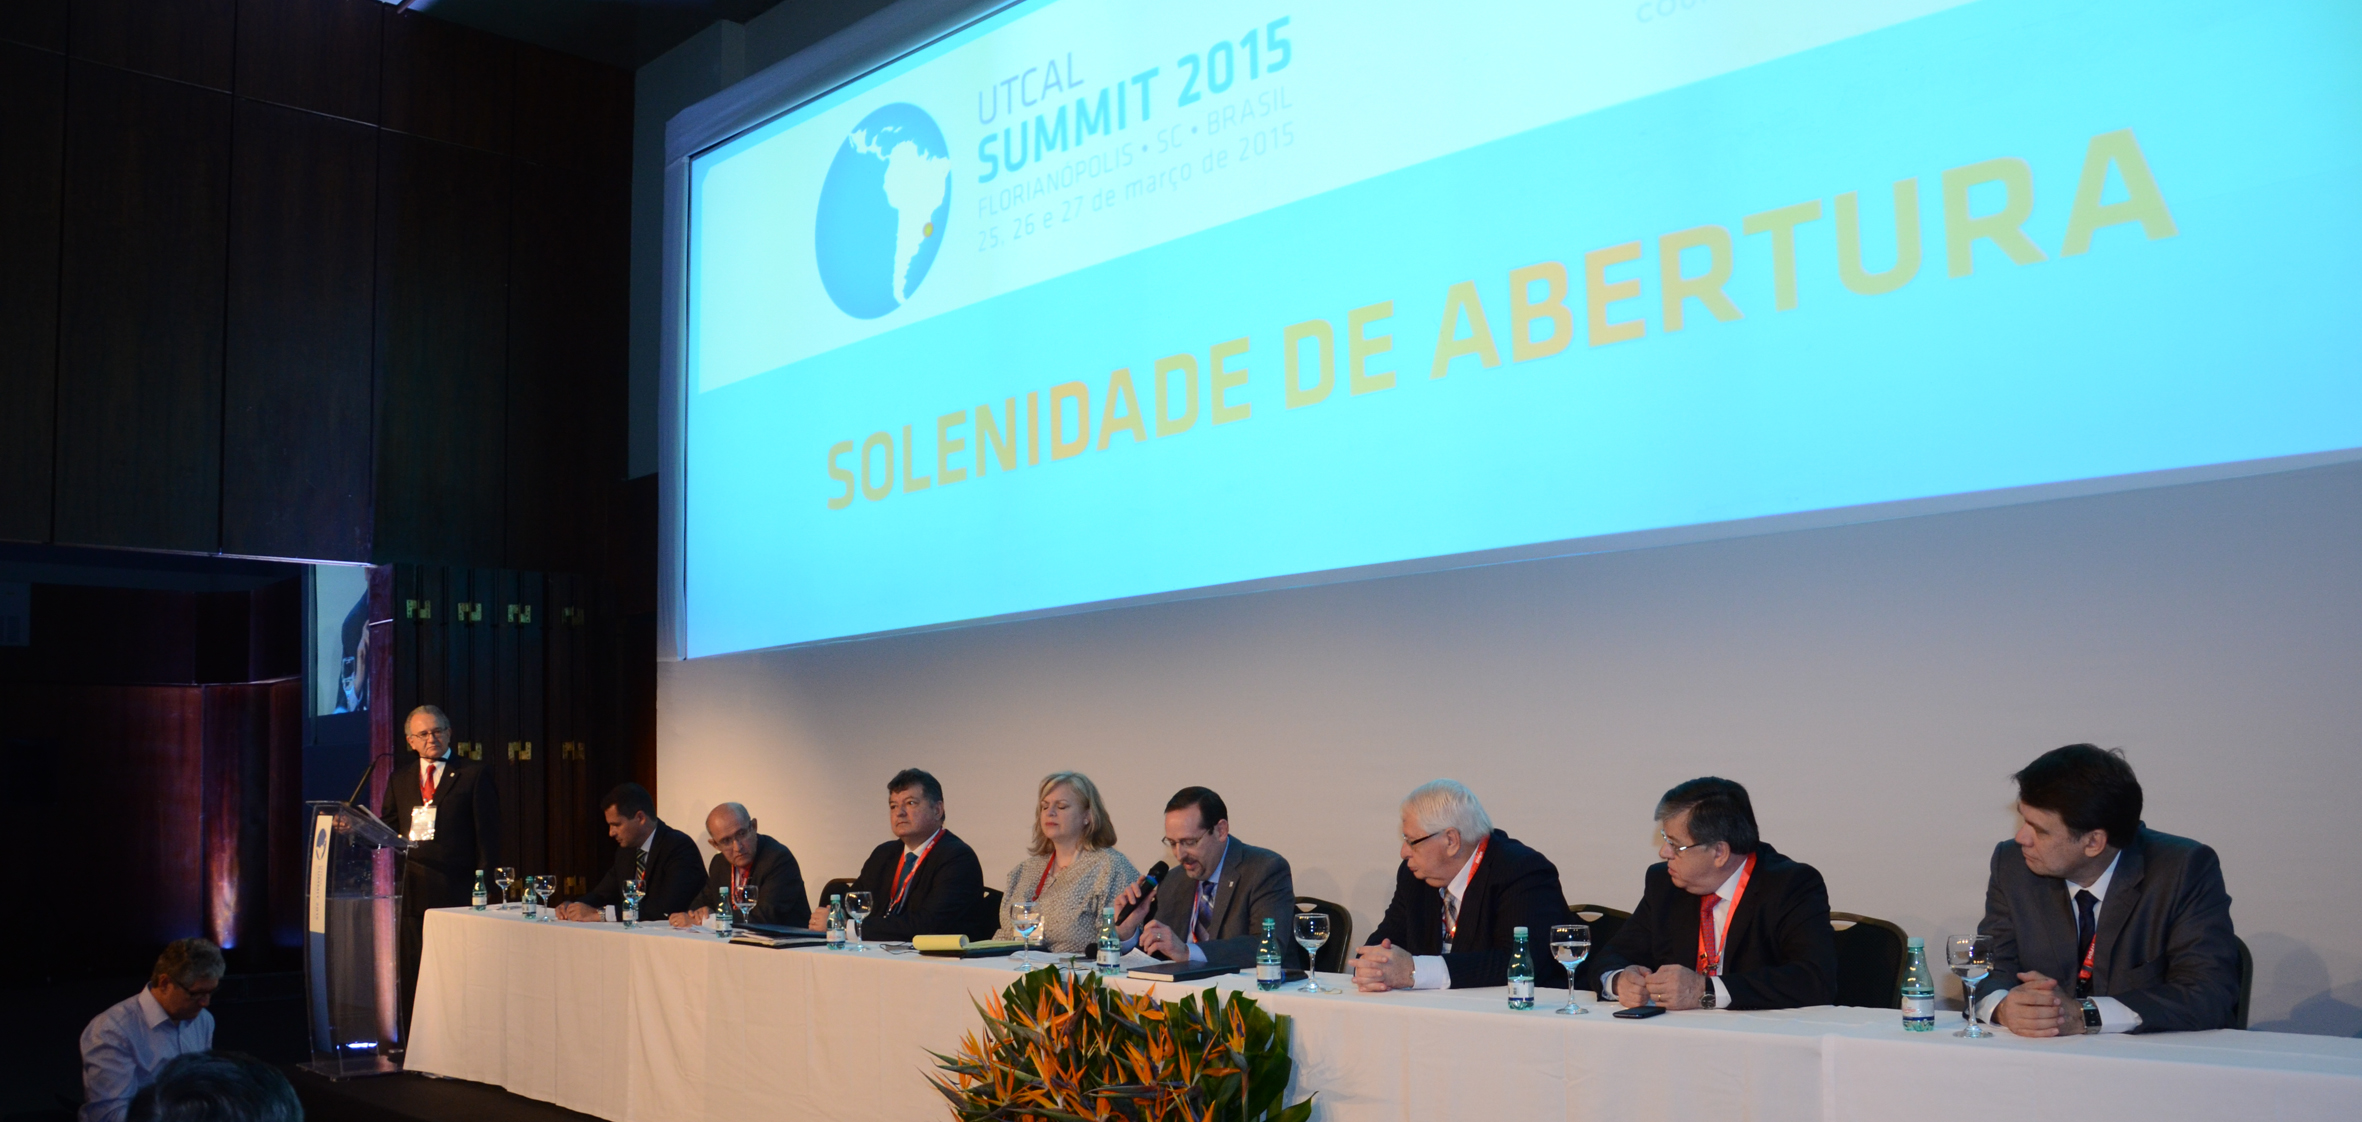 UTC AL Summit 2015